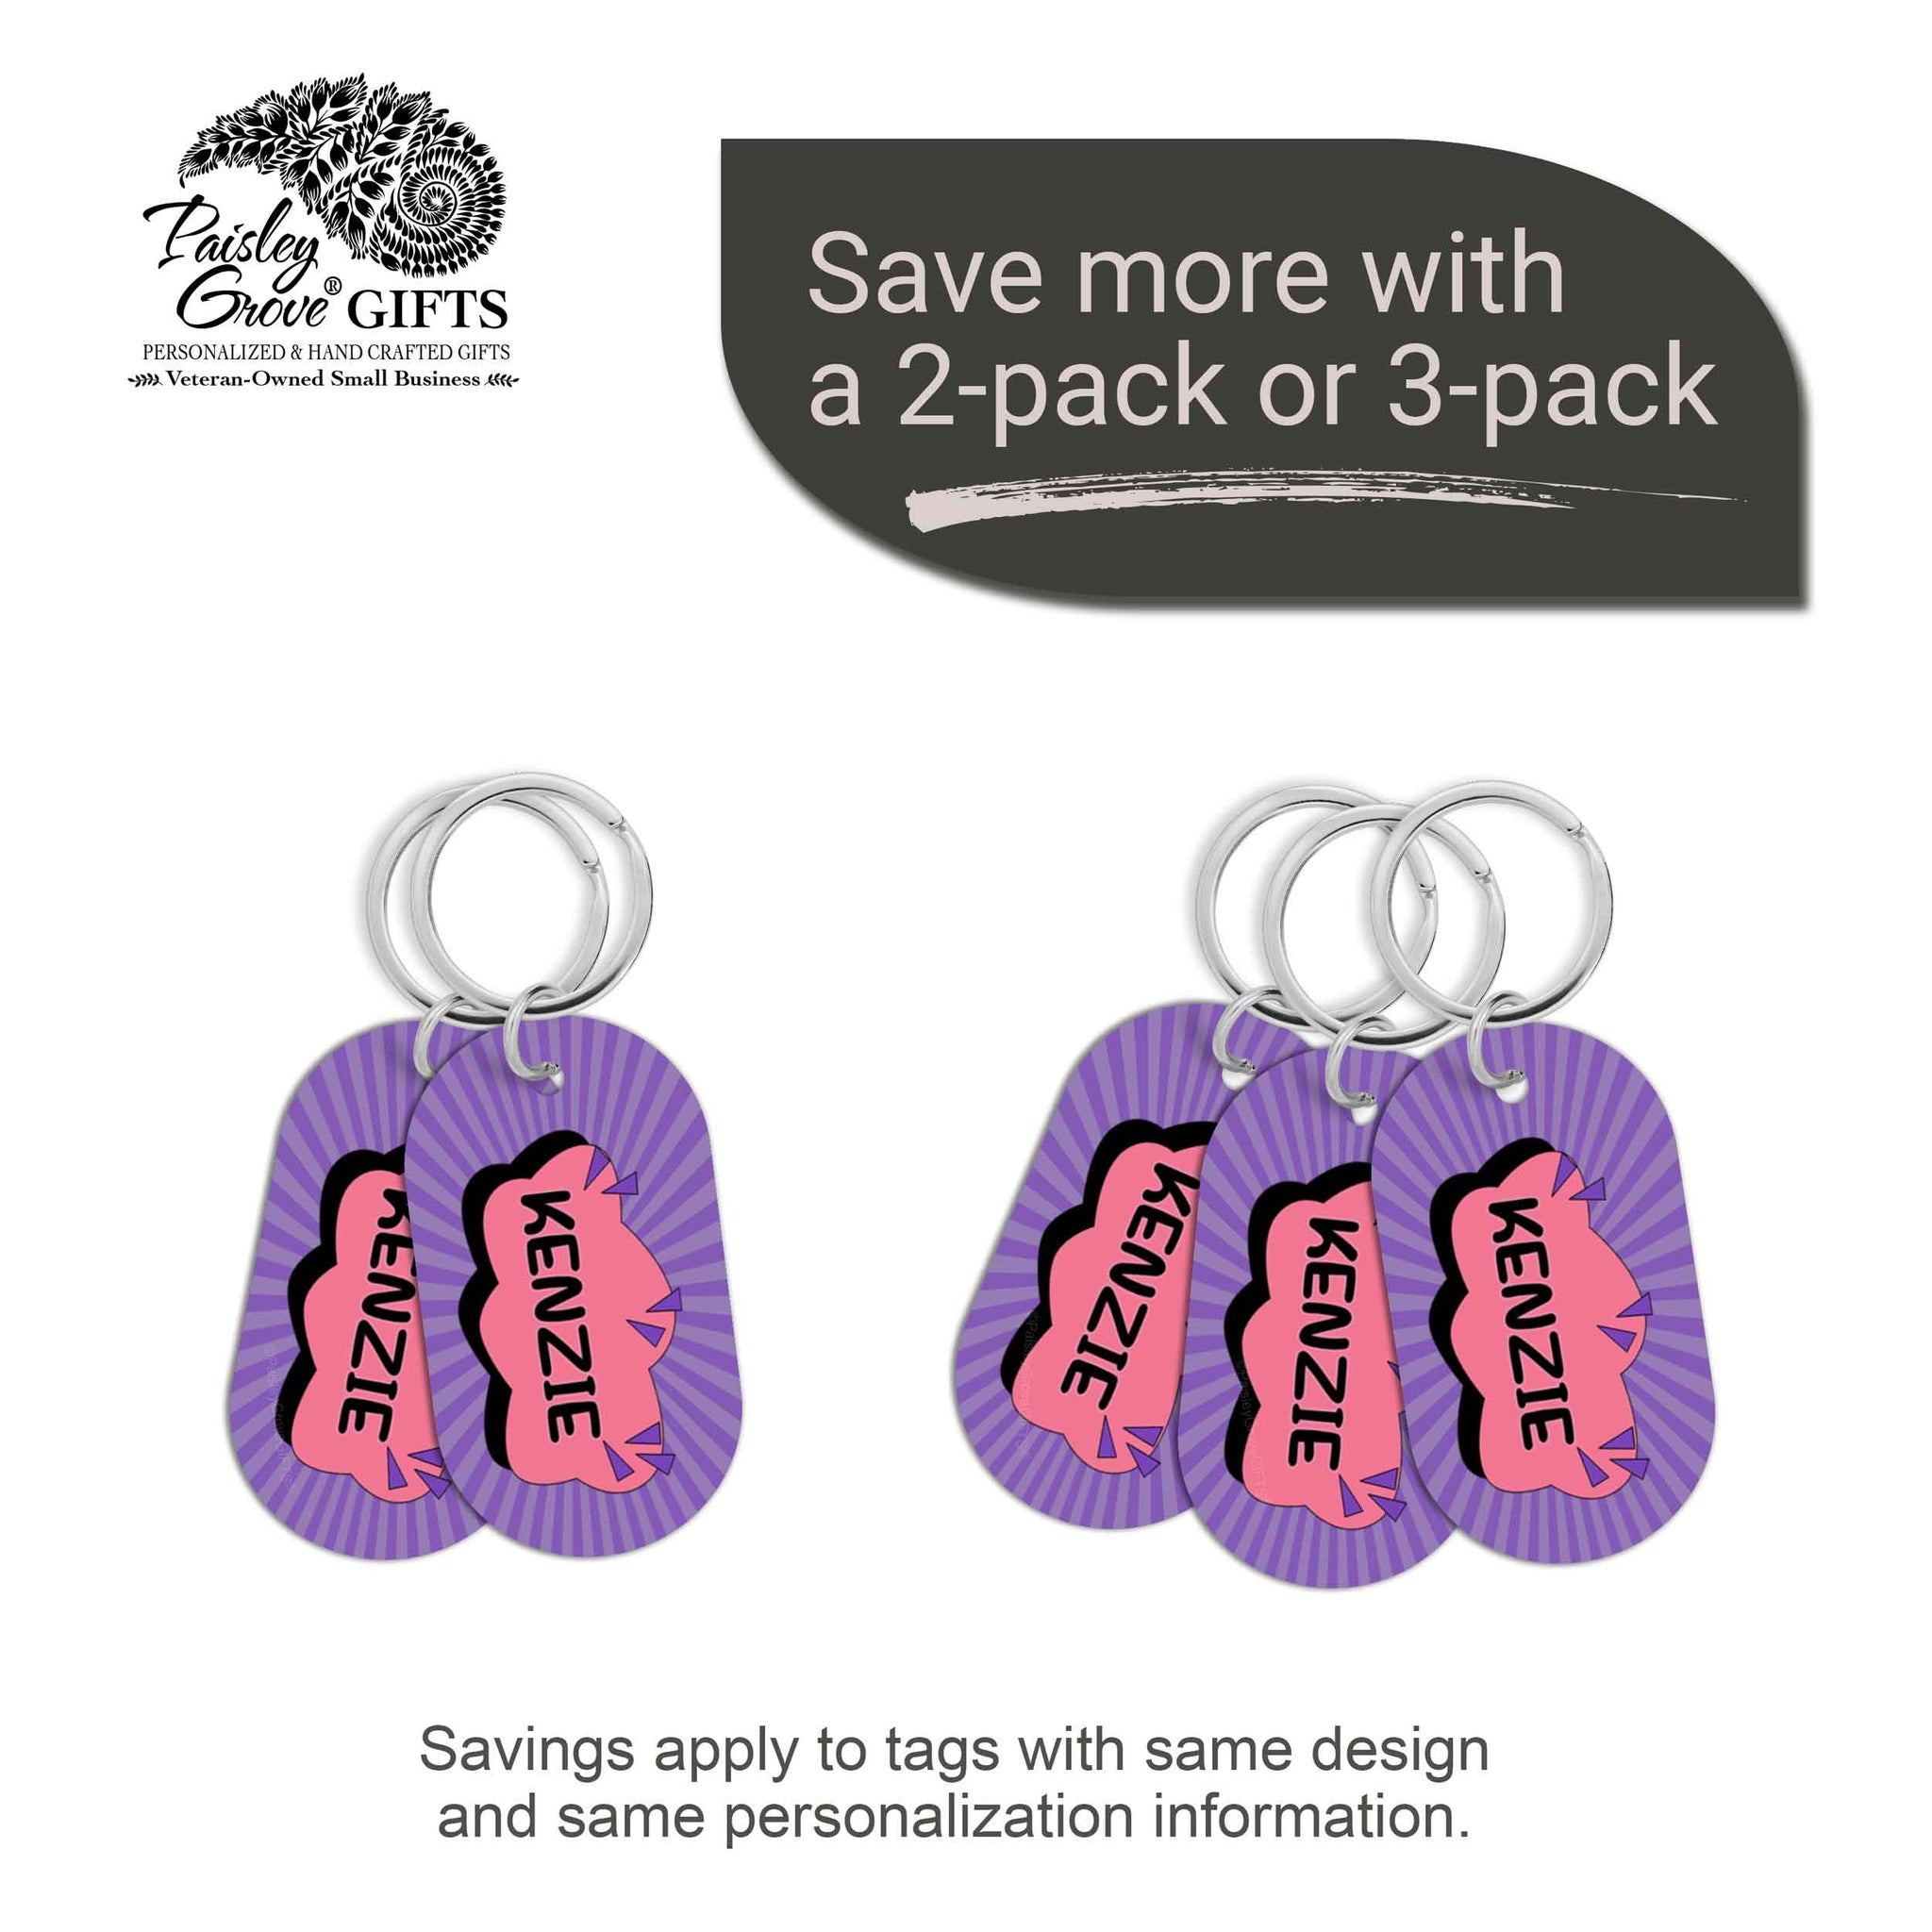 CopyrightPaisleyGroveGIFTS S070b2 Personalized bag ID tags for luggage or bags 2 or 3 pack option savings